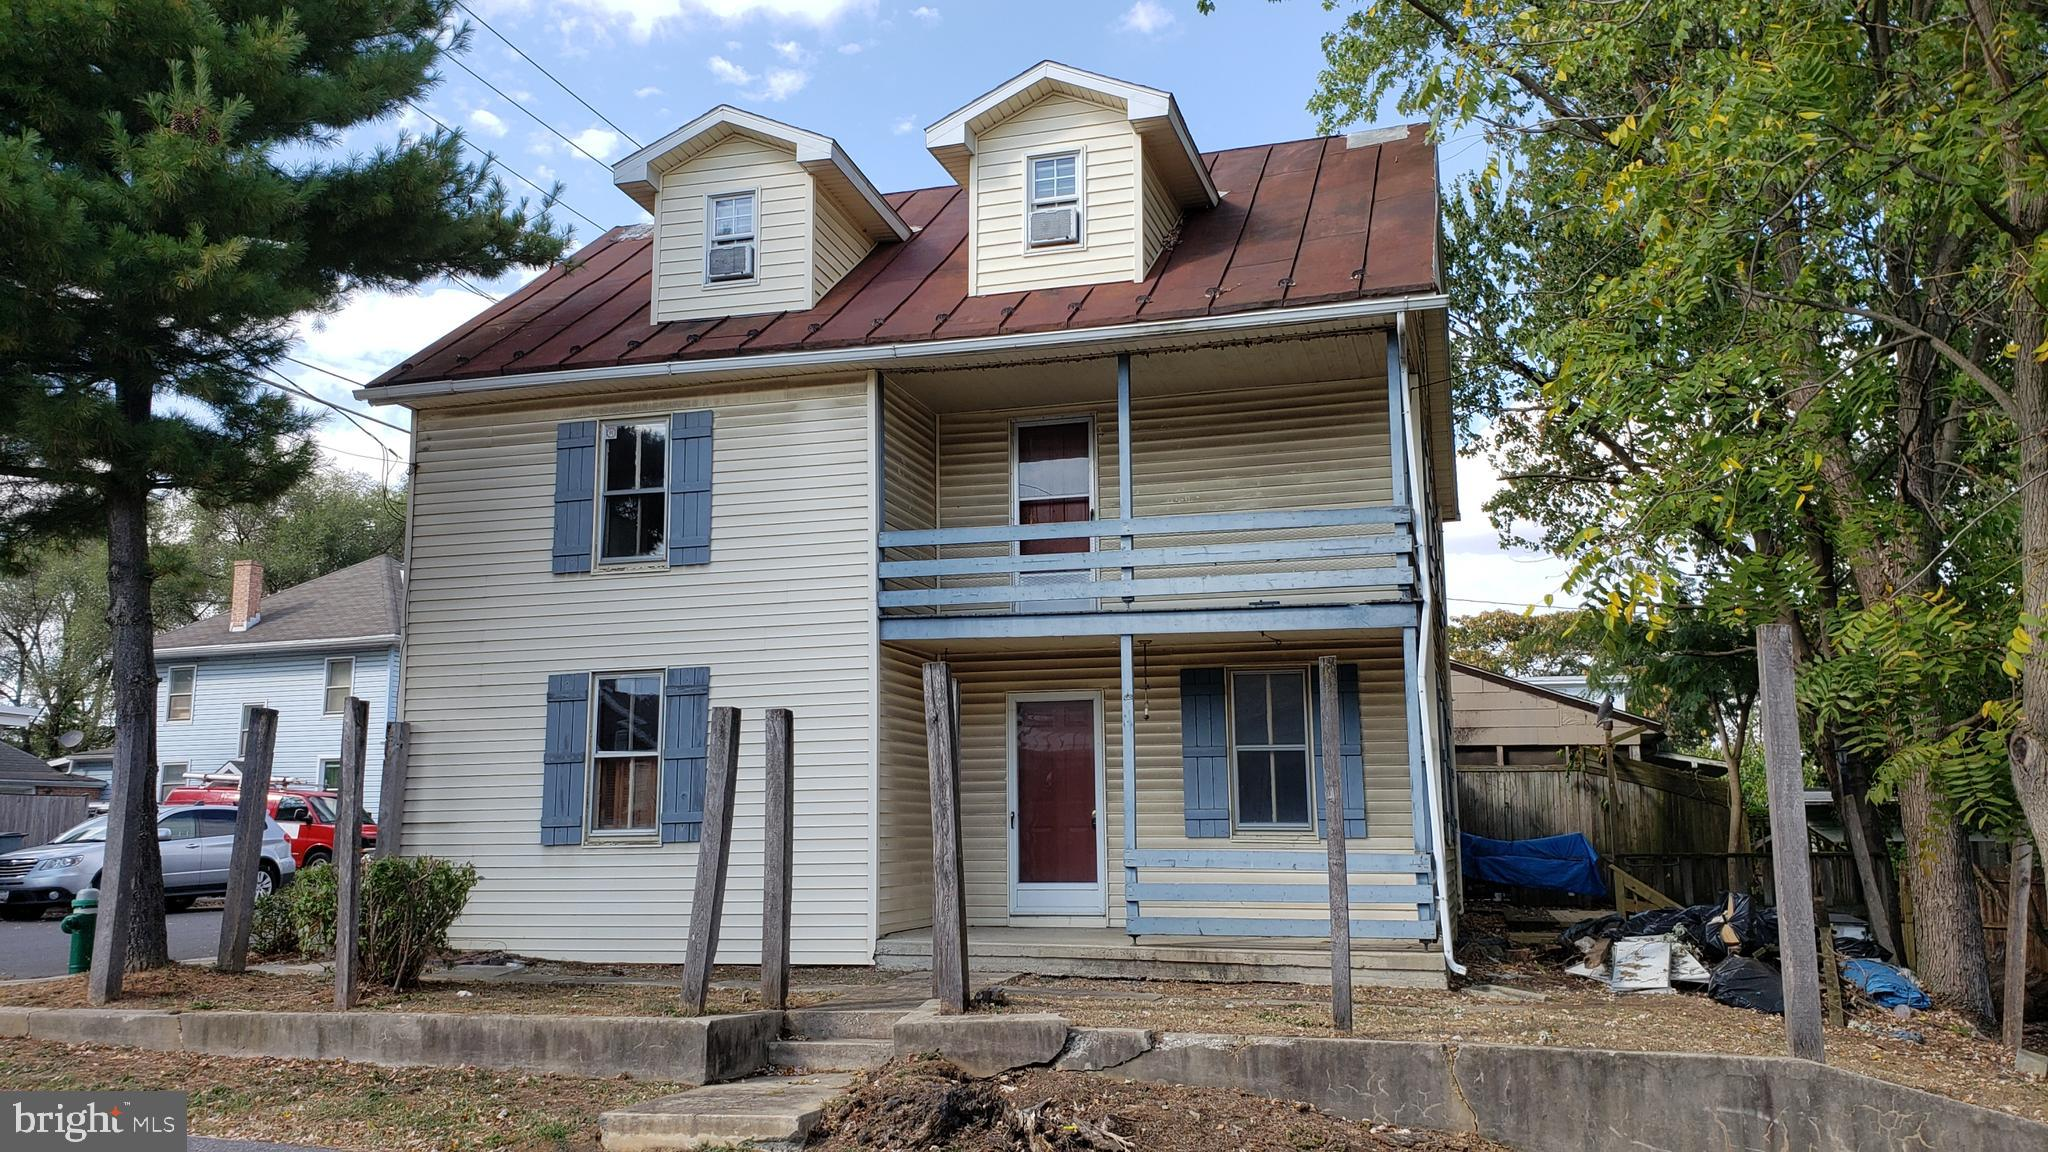 13701 VILLAGE MILL DRIVE, MAUGANSVILLE, MD 21767